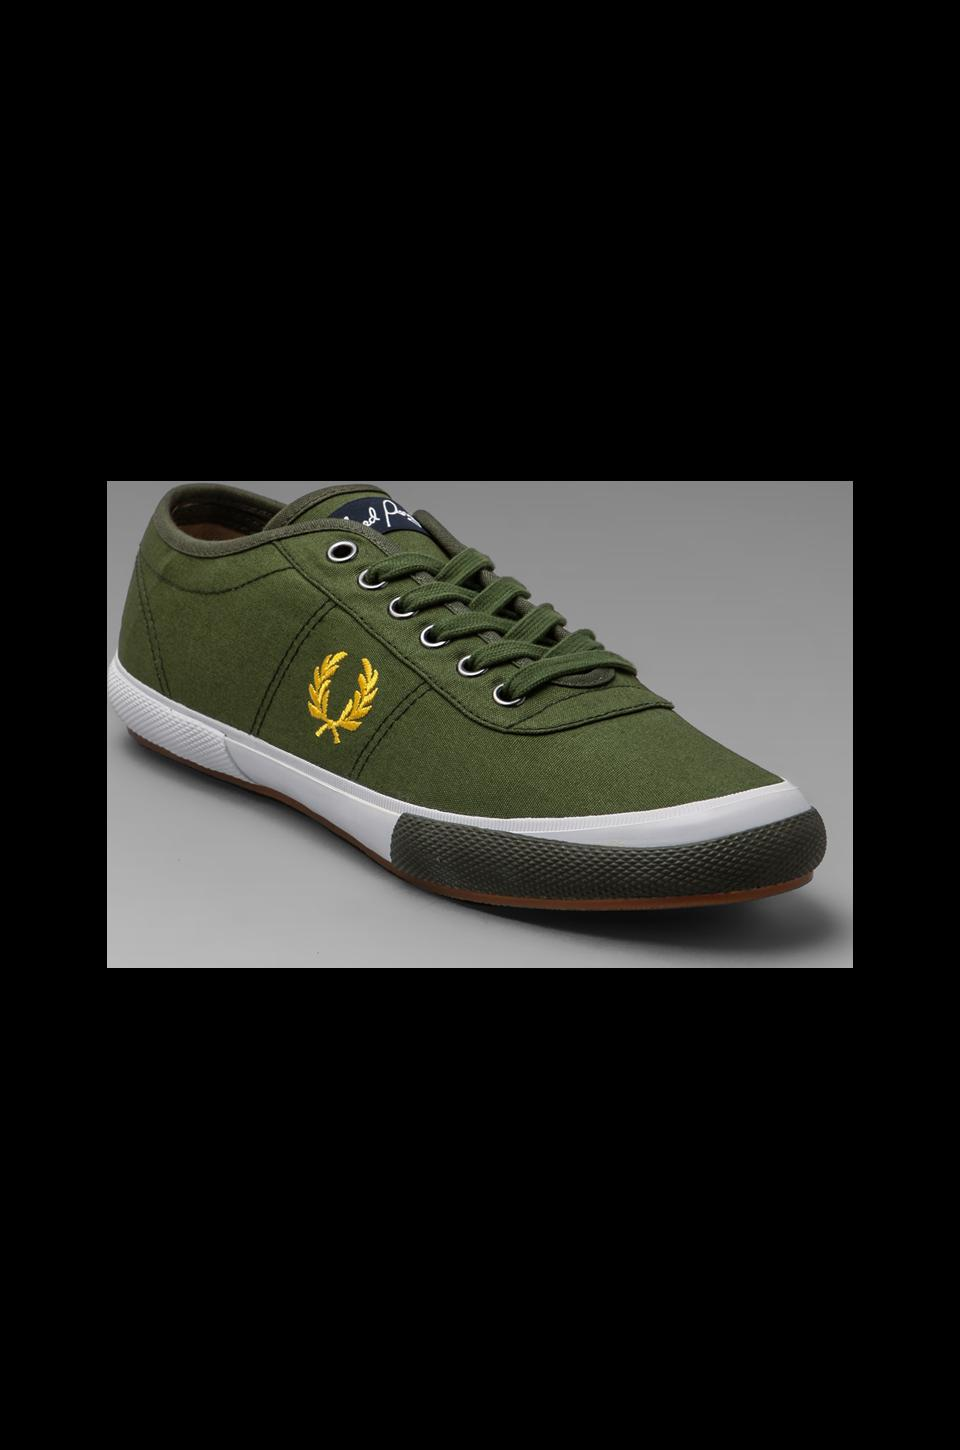 Fred Perry Woodford Canvas in Olive/Canary Yellow/Iris